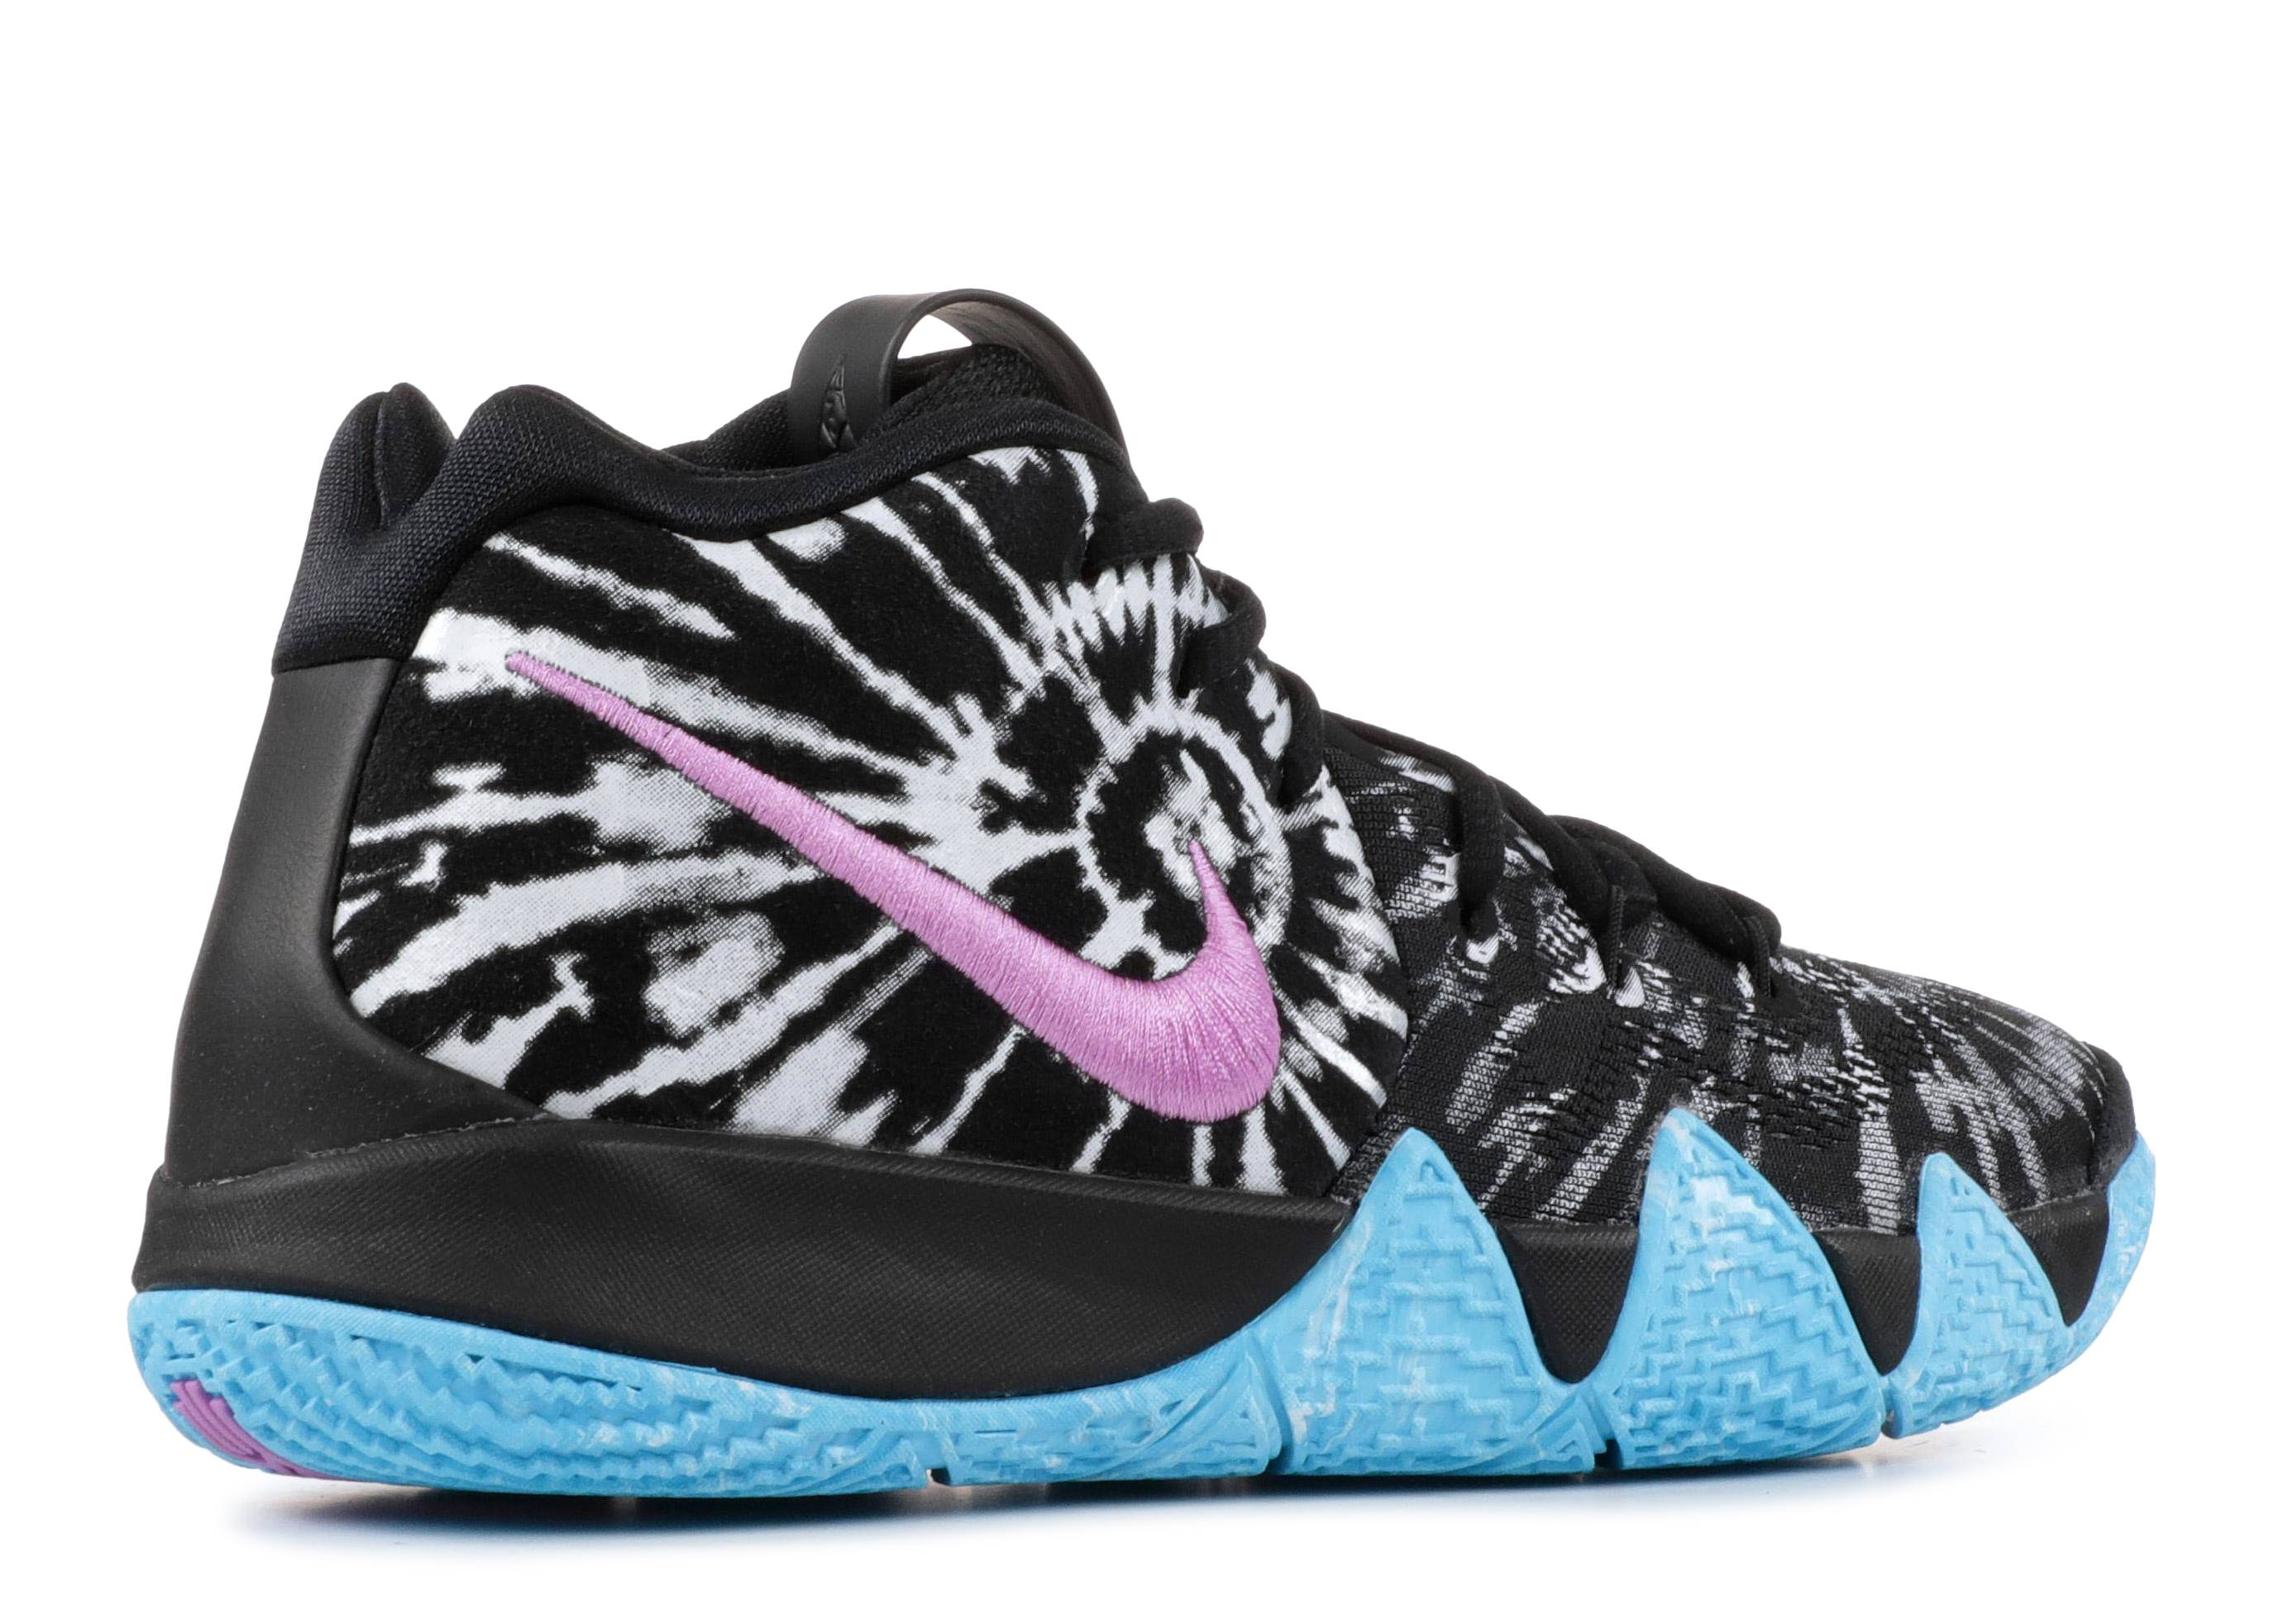 f8603ad6ee8e Kyrie 4 As (gs)